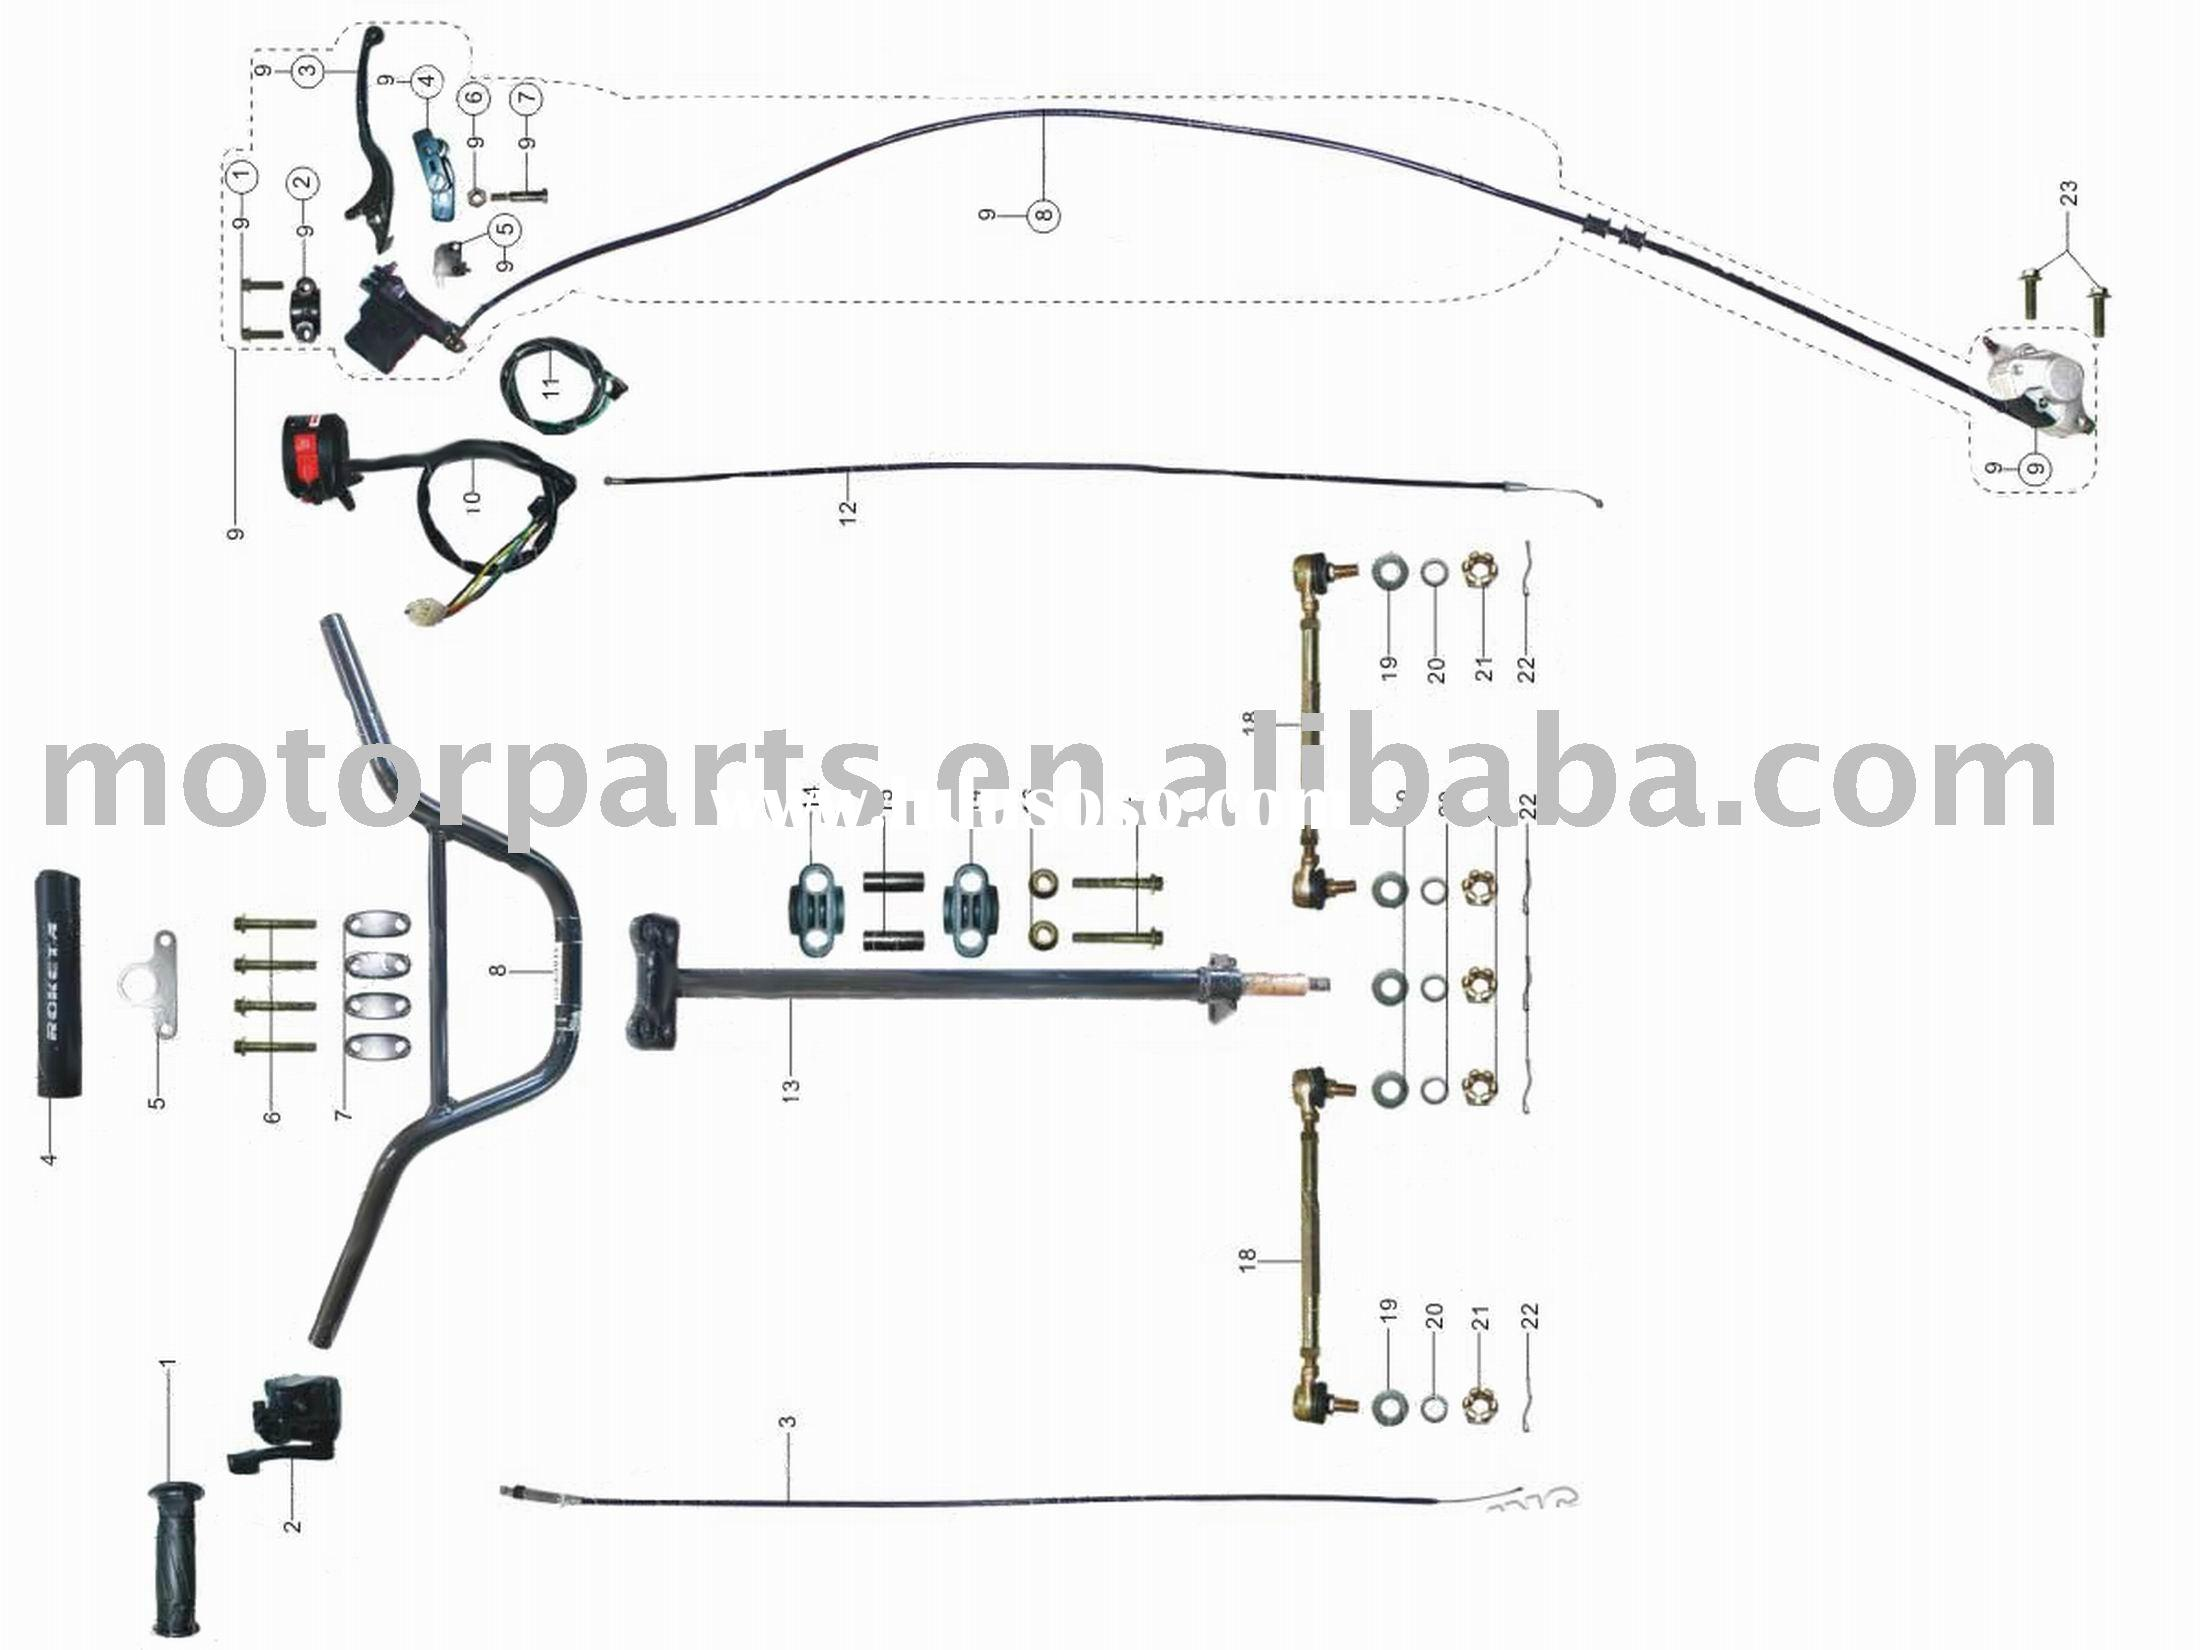 Taotao Ata 110h1 Wiring Diagram : 31 Wiring Diagram Images